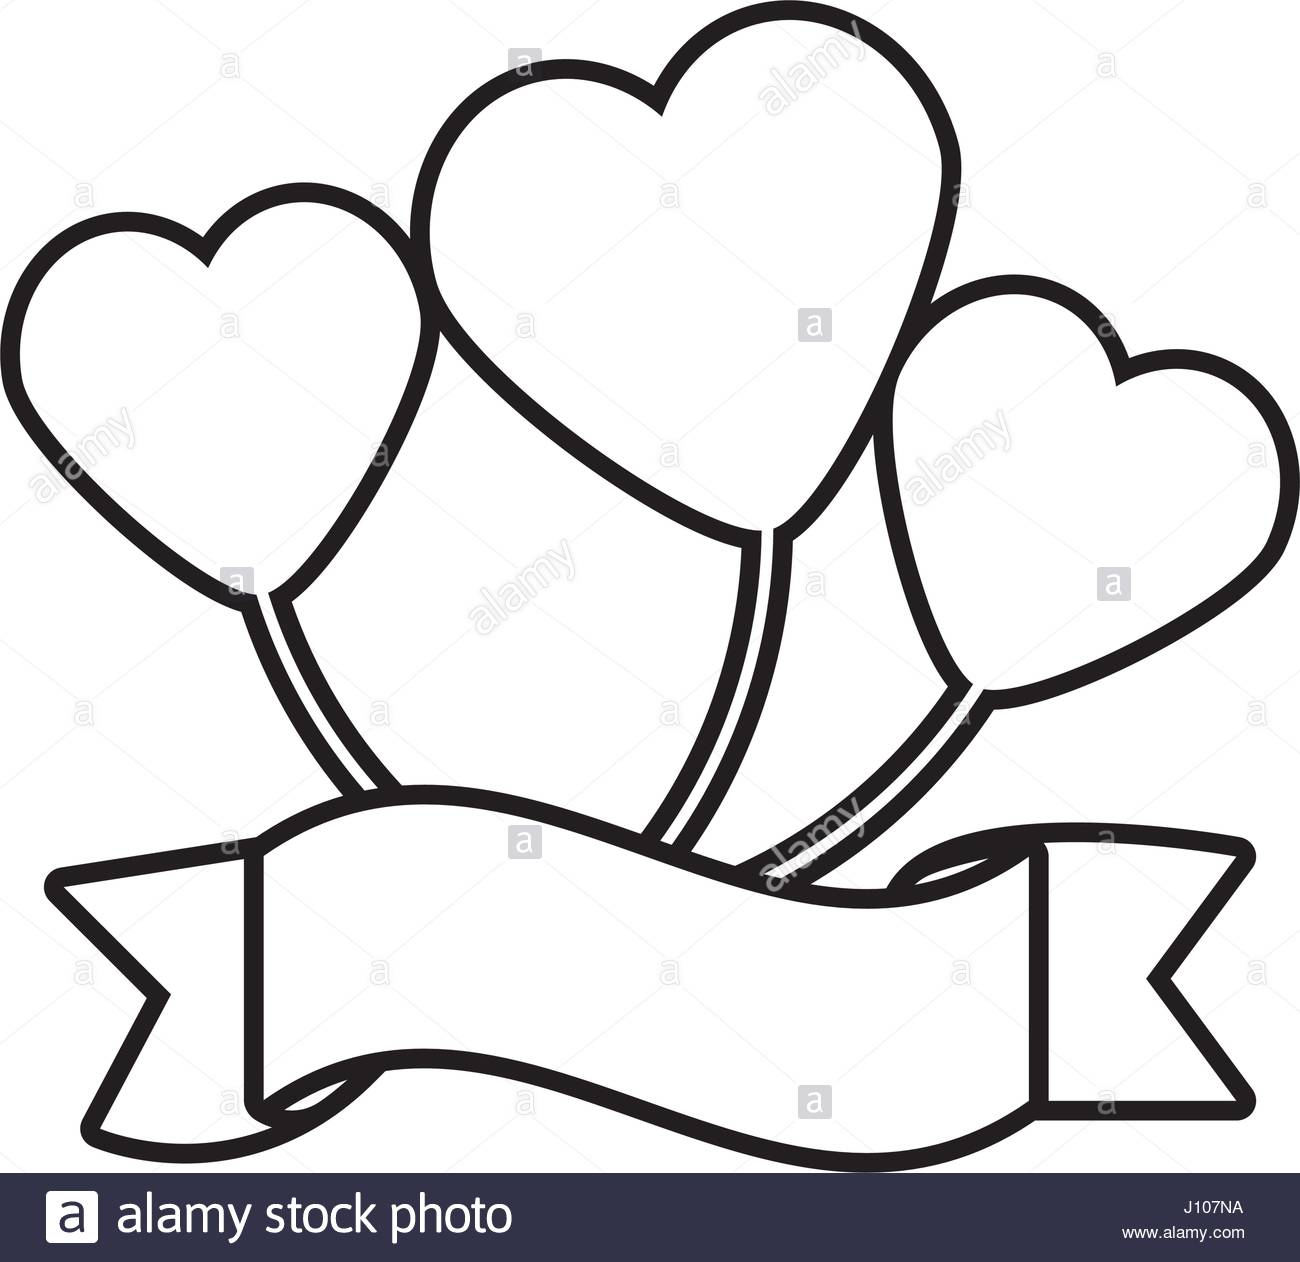 1300x1262 Balloon Heart Ribbon Decorative Outline Stock Vector Art